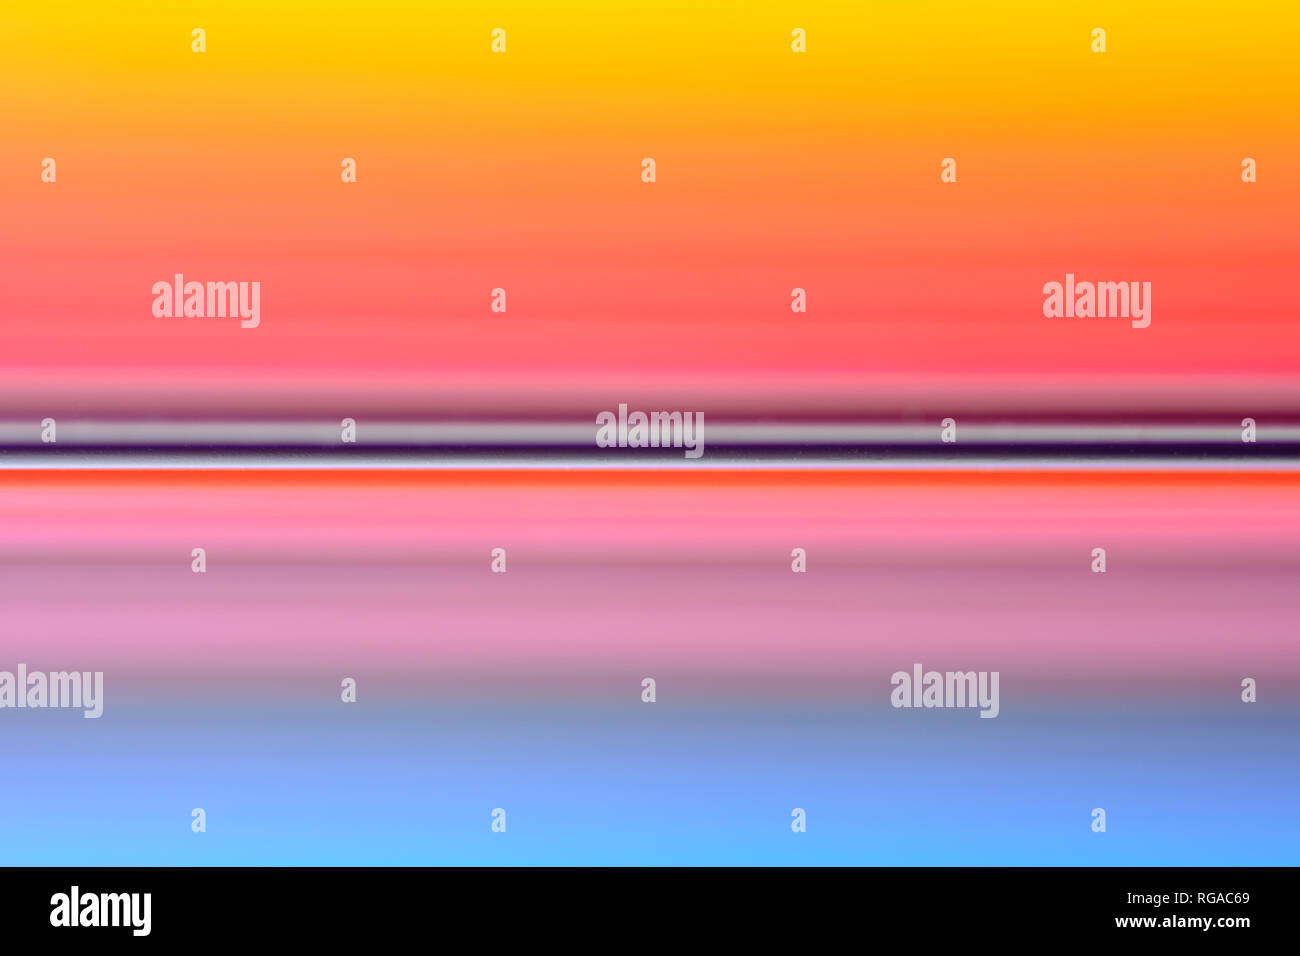 Colourful blurred spectrum made from an image of colored wooden sticks with a shallow depth of field  as a graphical resource / background / texture - Stock Image